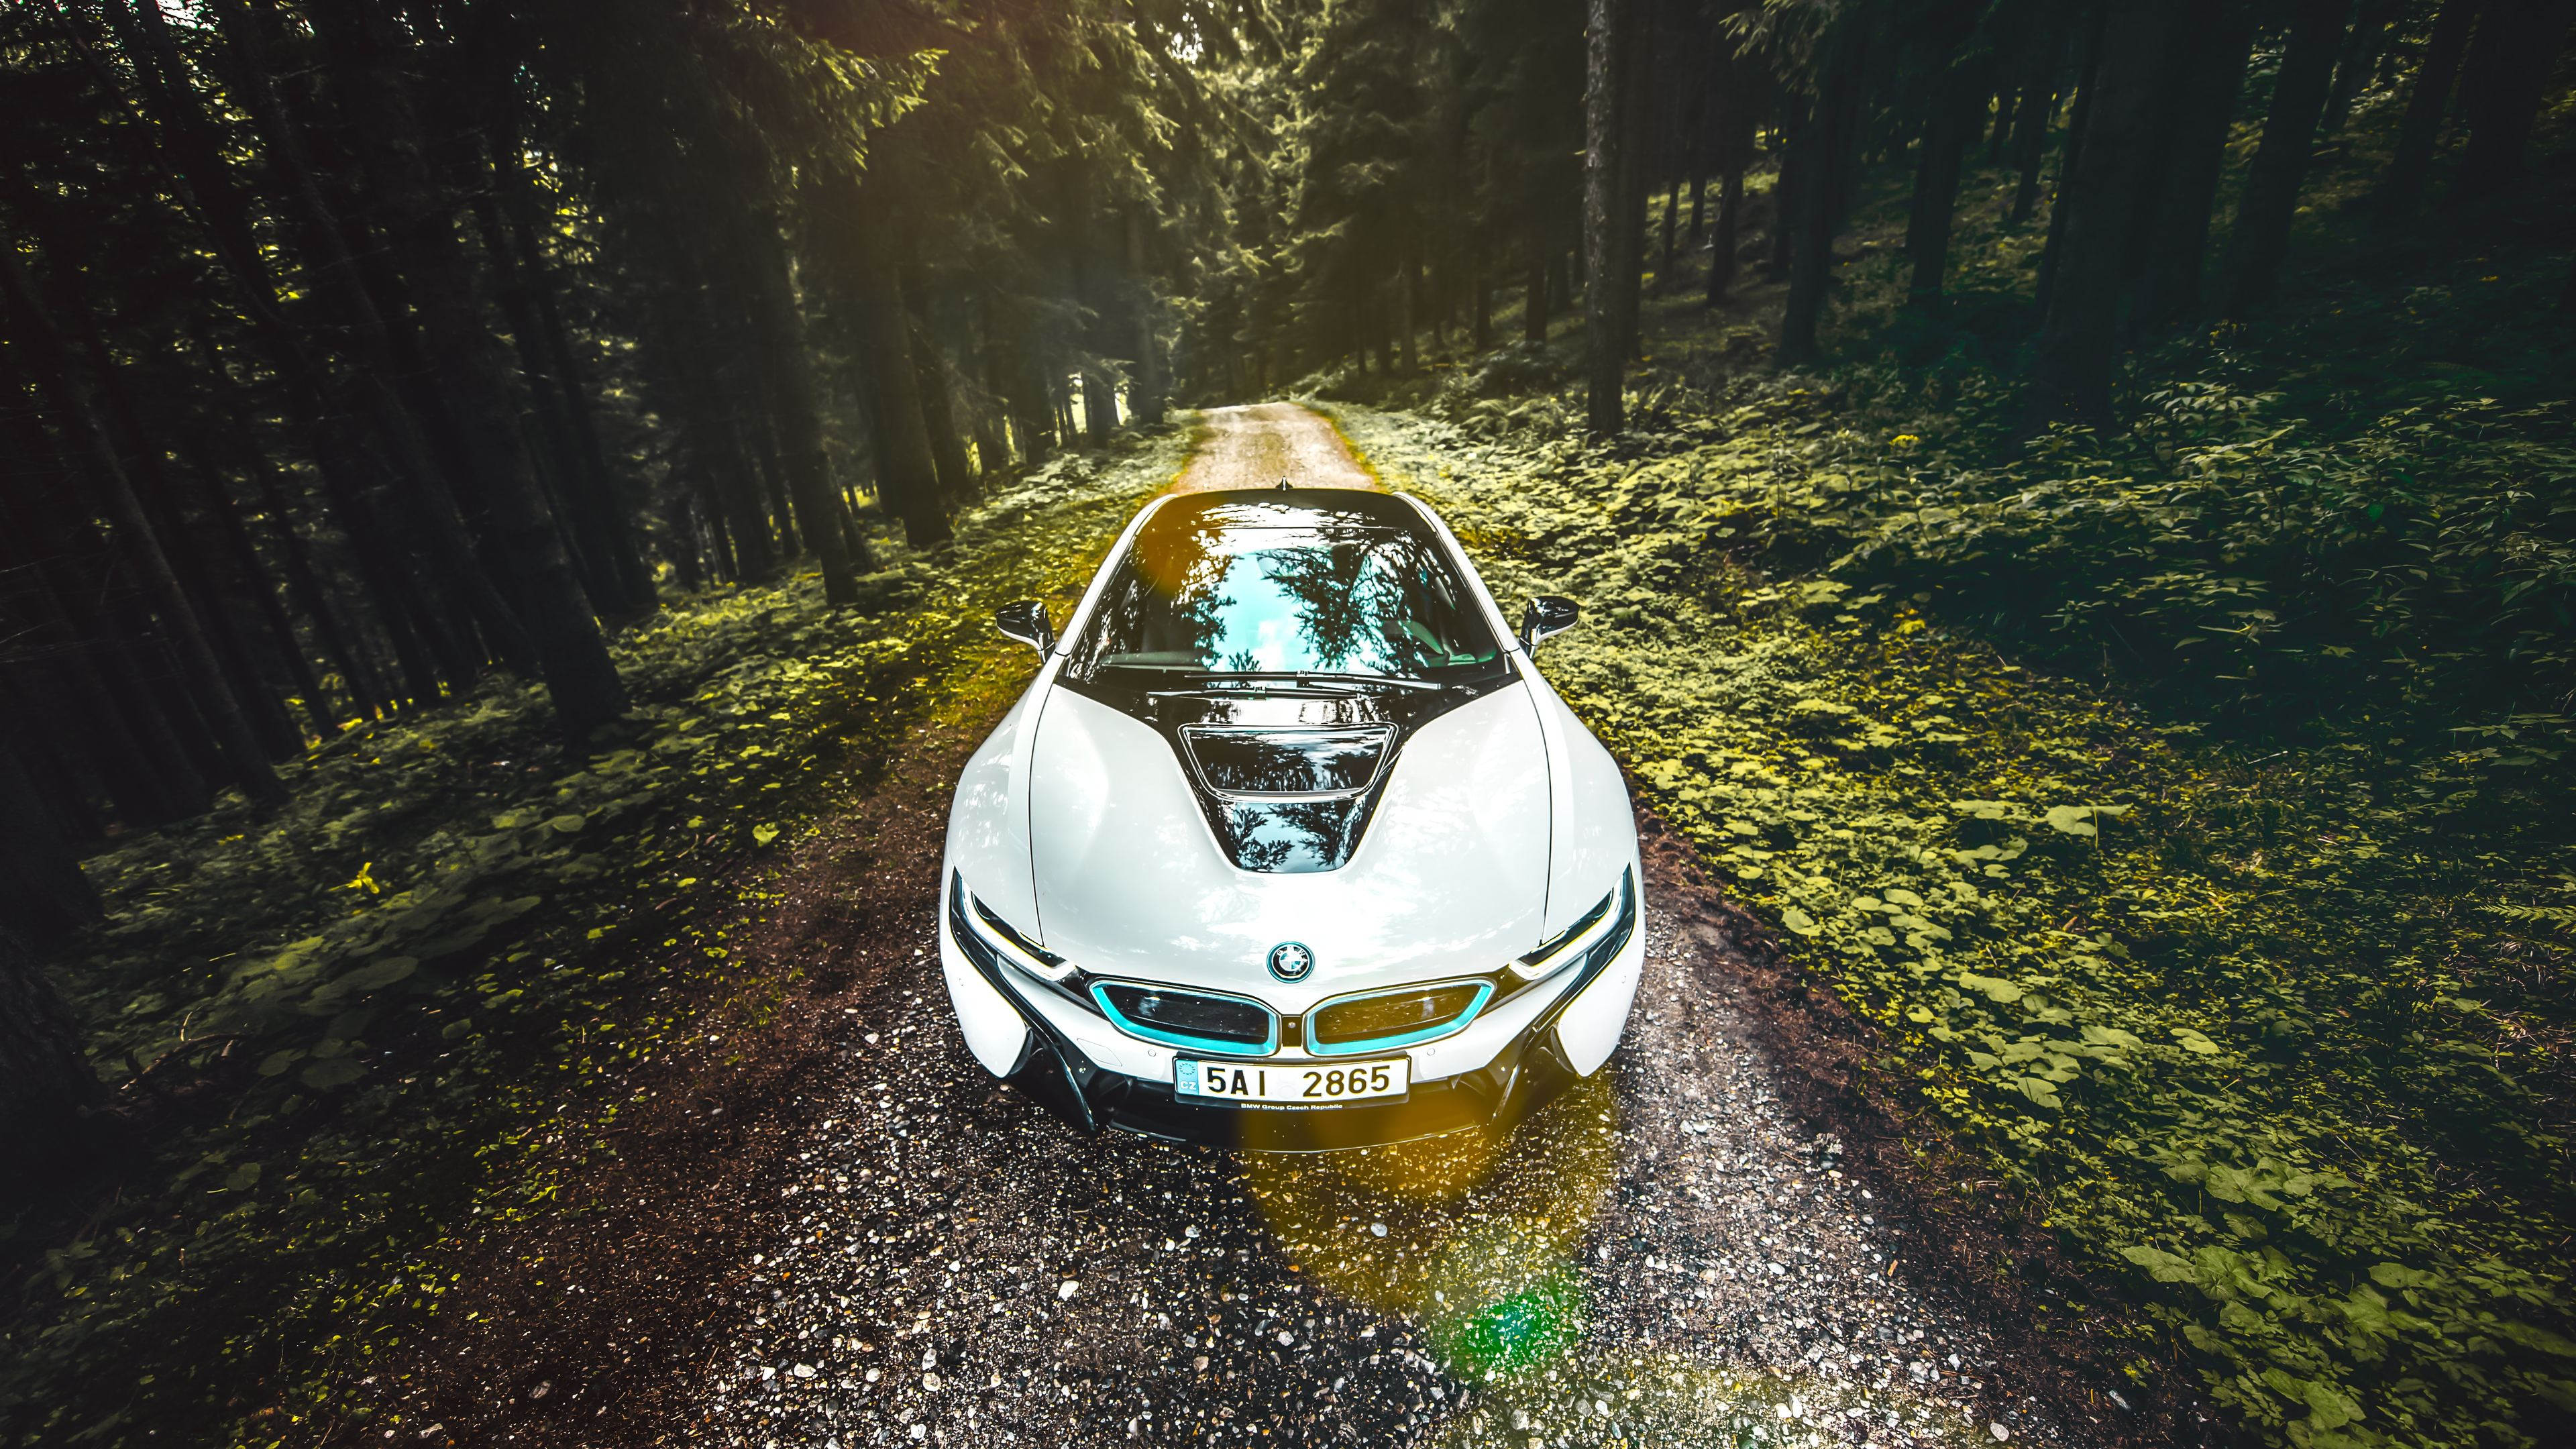 bmw i8 2020 1572661157 - Bmw I8 2020 - hd-wallpapers, cars wallpapers, bmw wallpapers, bmw i8 wallpapers, 5k wallpapers, 4k-wallpapers